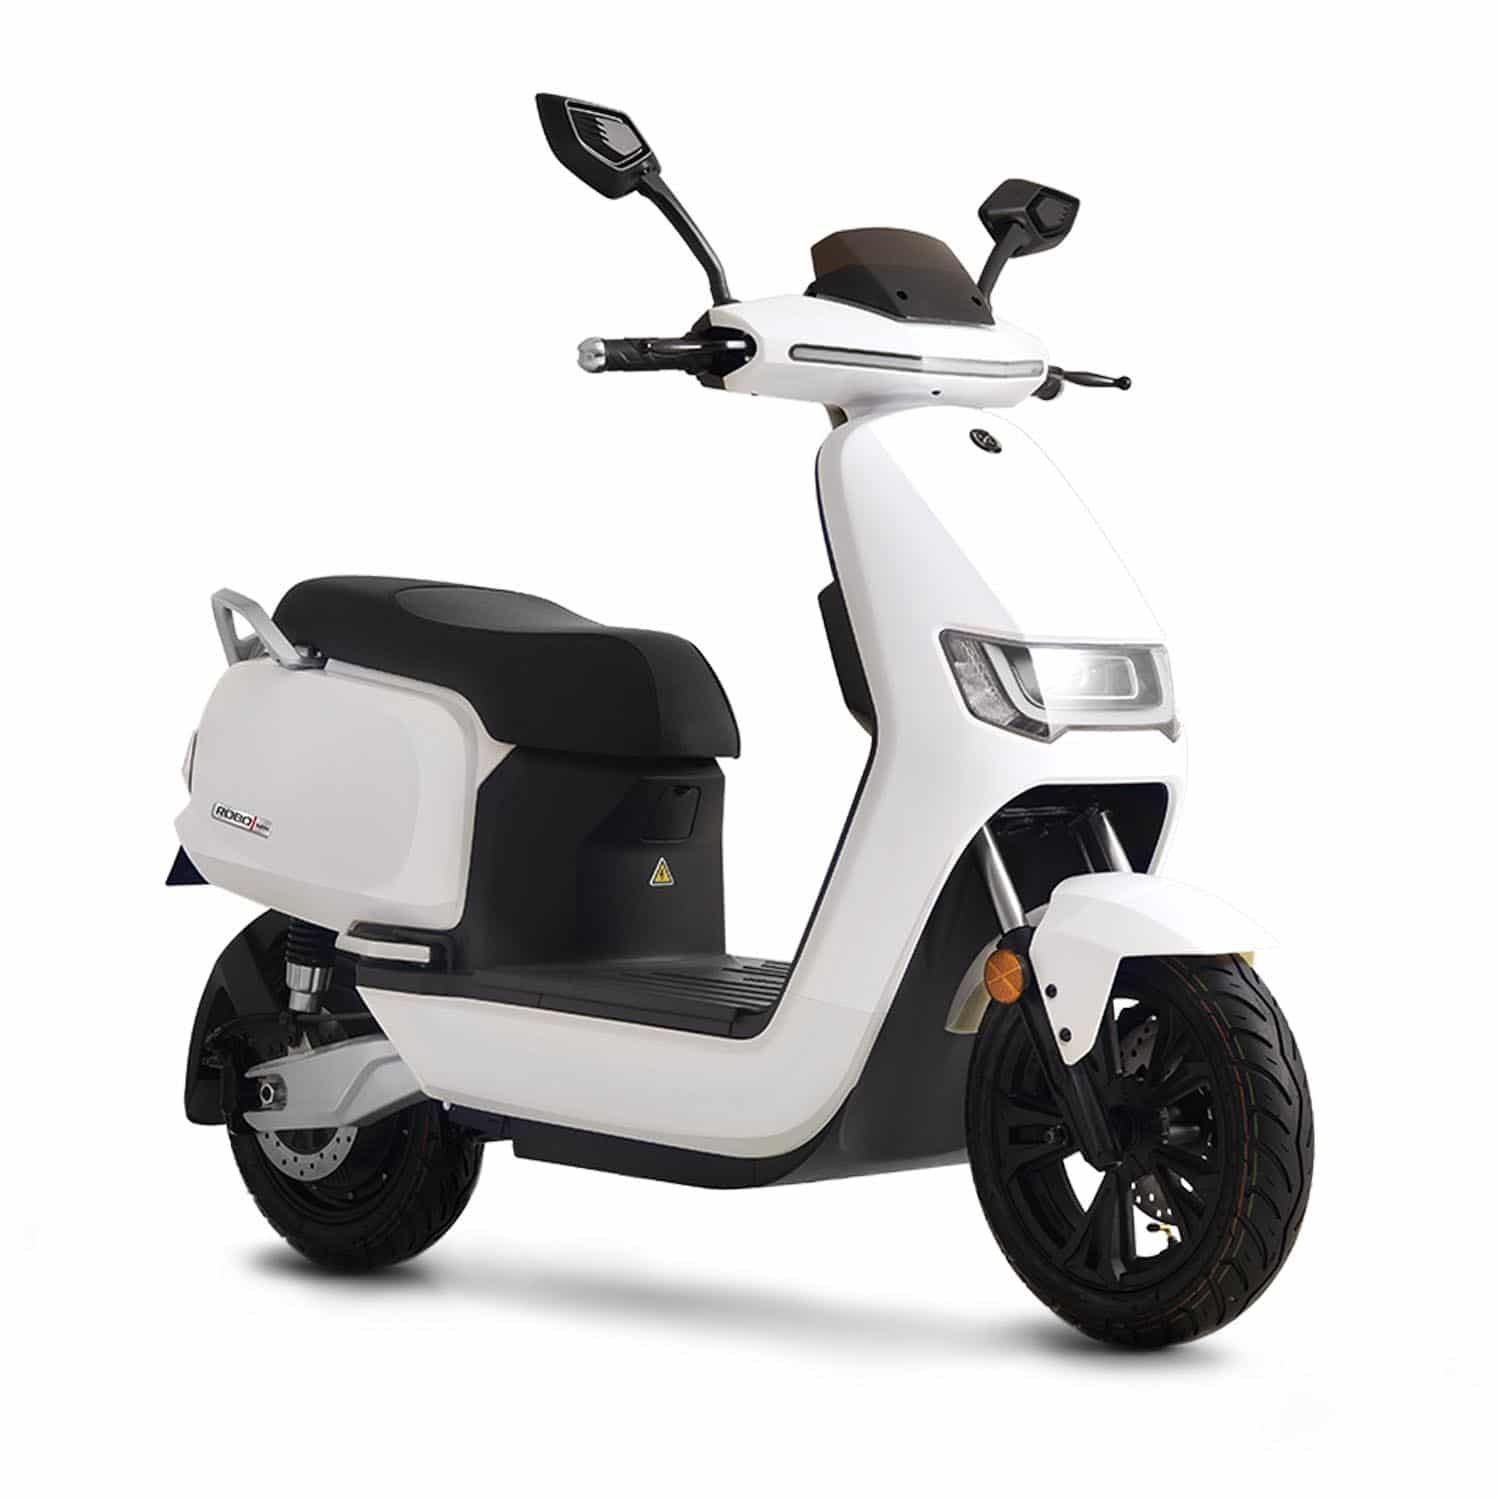 Sunra Robo scooter electrique batterie sans effort lithium ion pratique